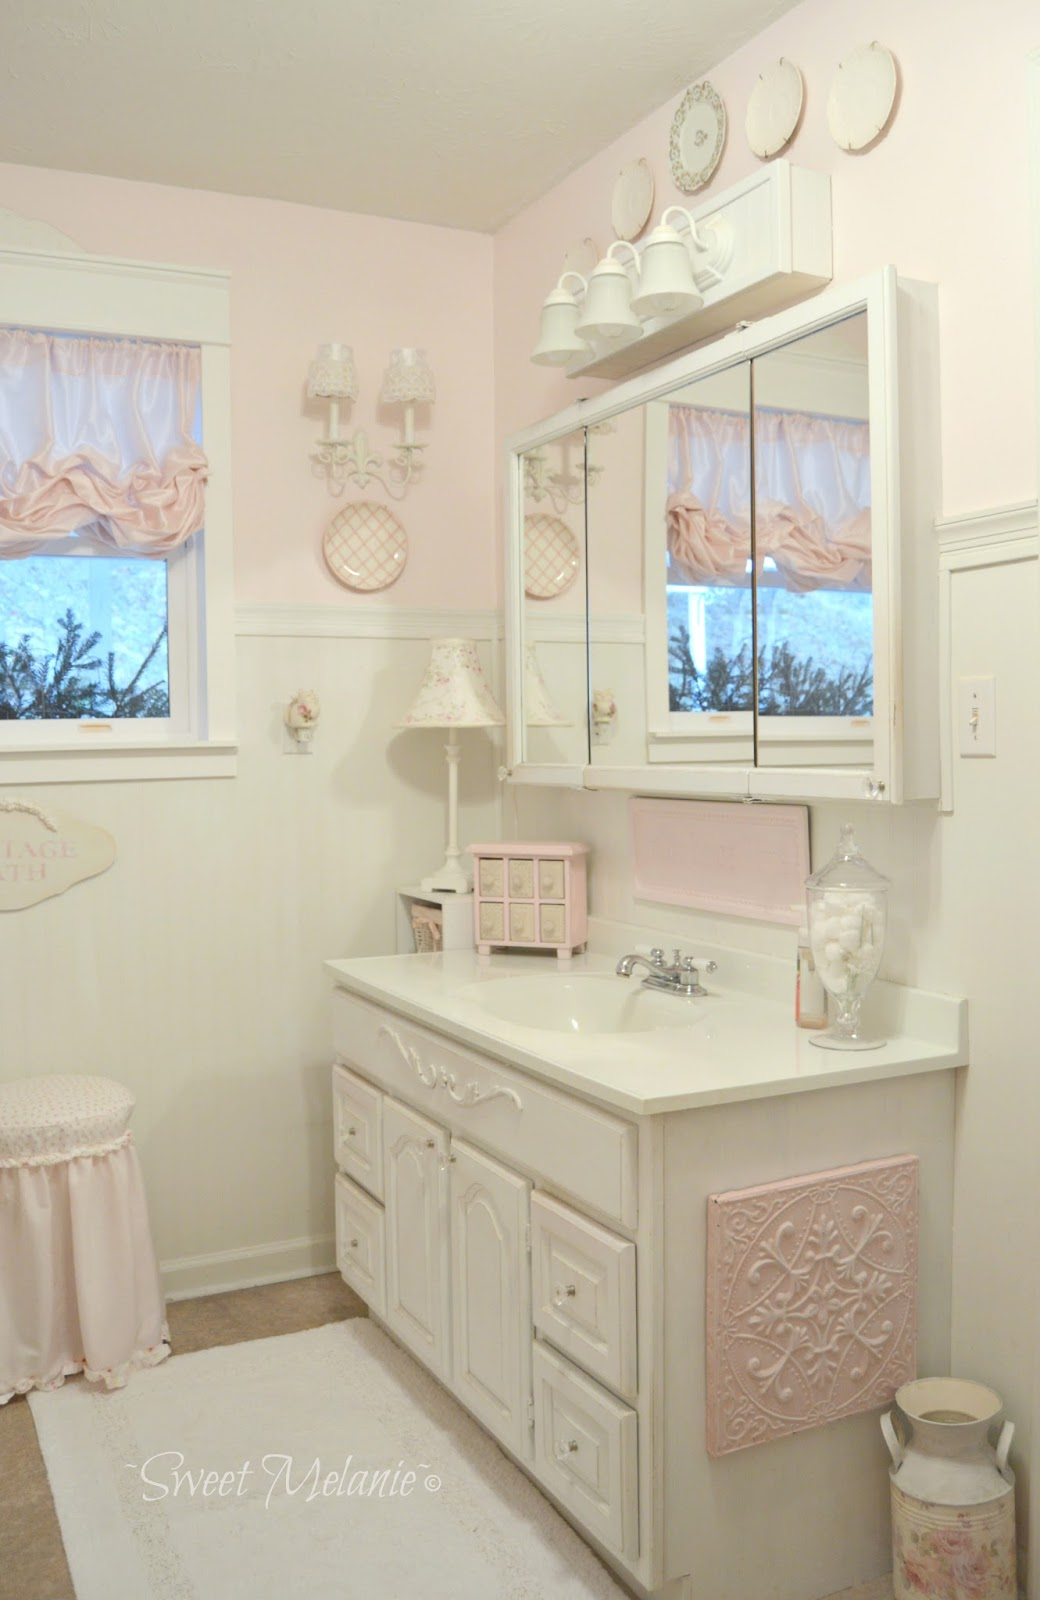 Cottage Chic Bathroom With Ruffles Window Treatments